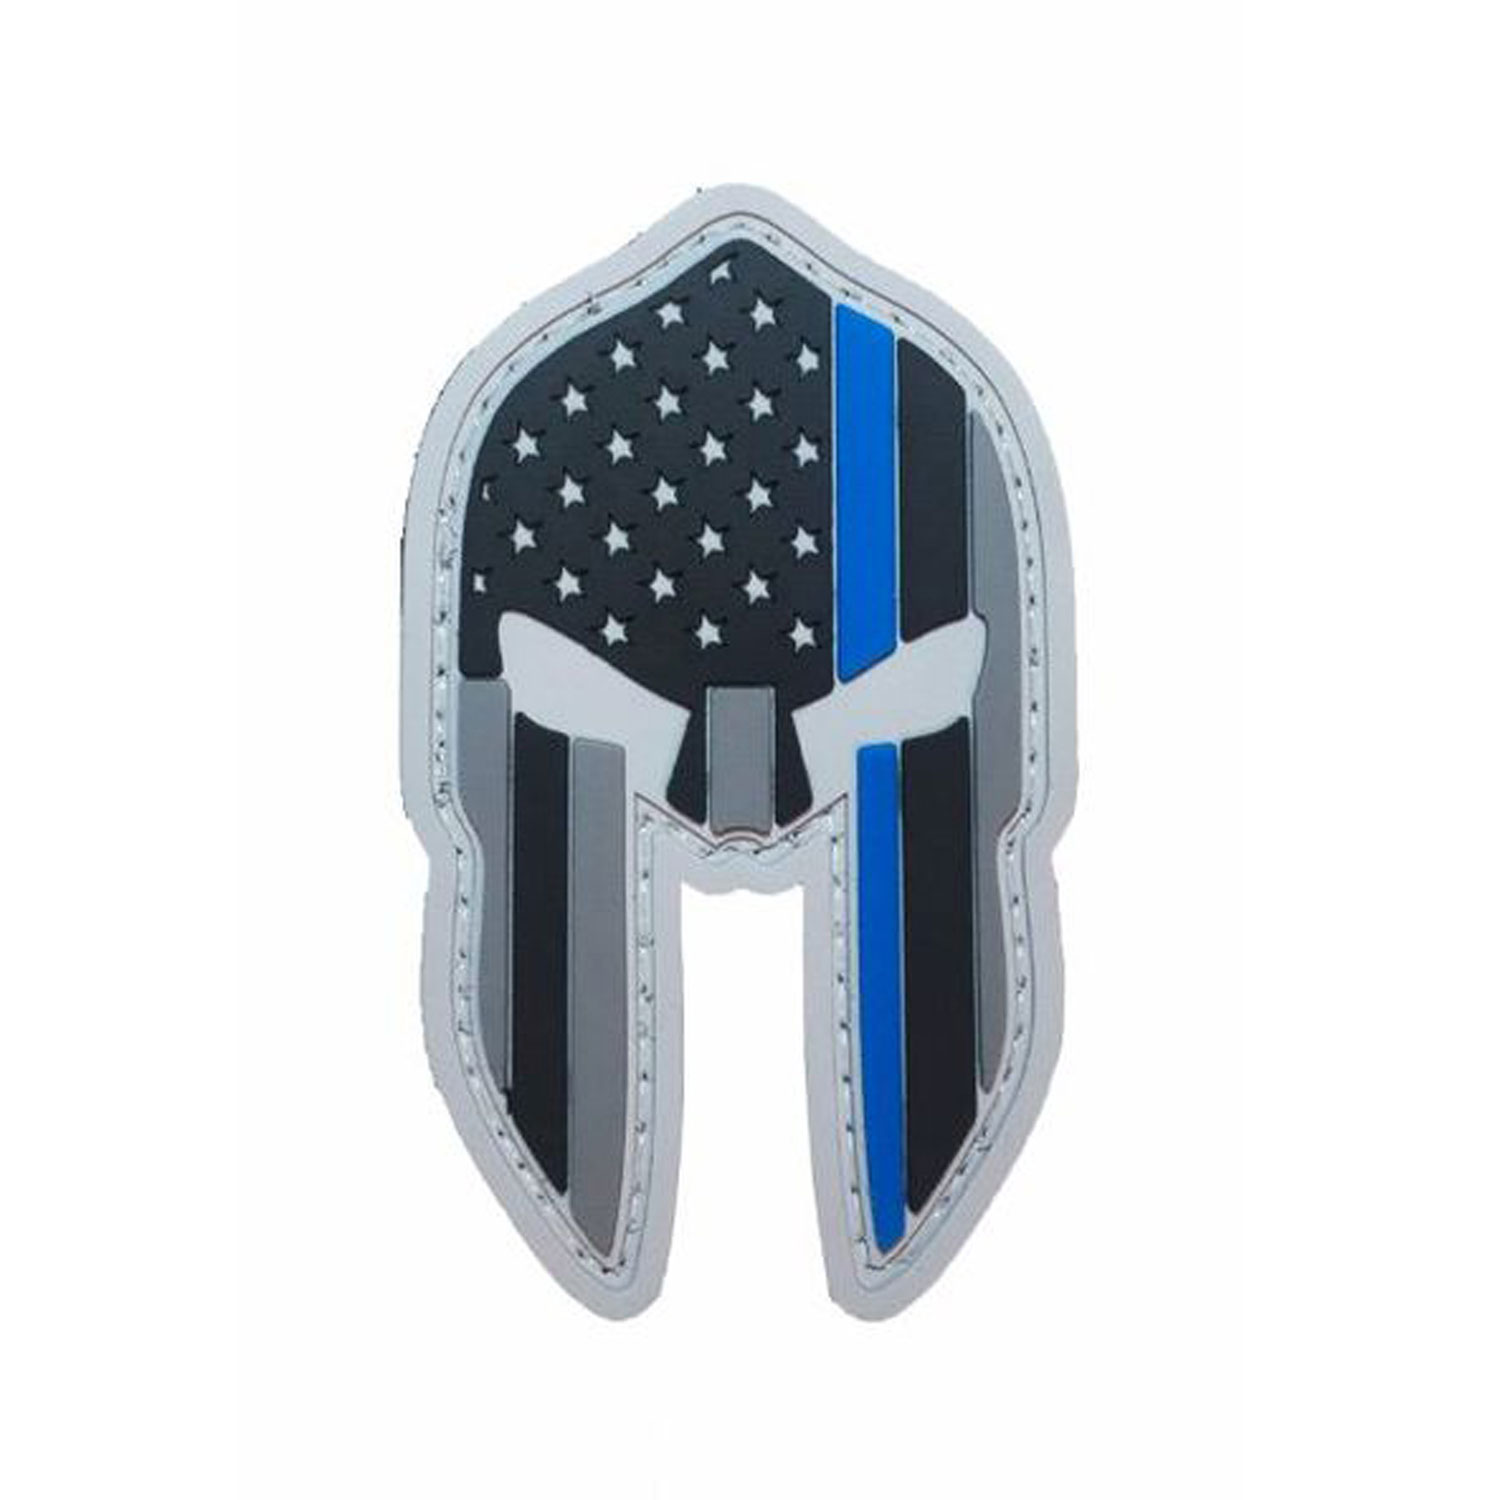 PFI Fashions Spartan US Flag Thin Blue Line PVC Morale Patch